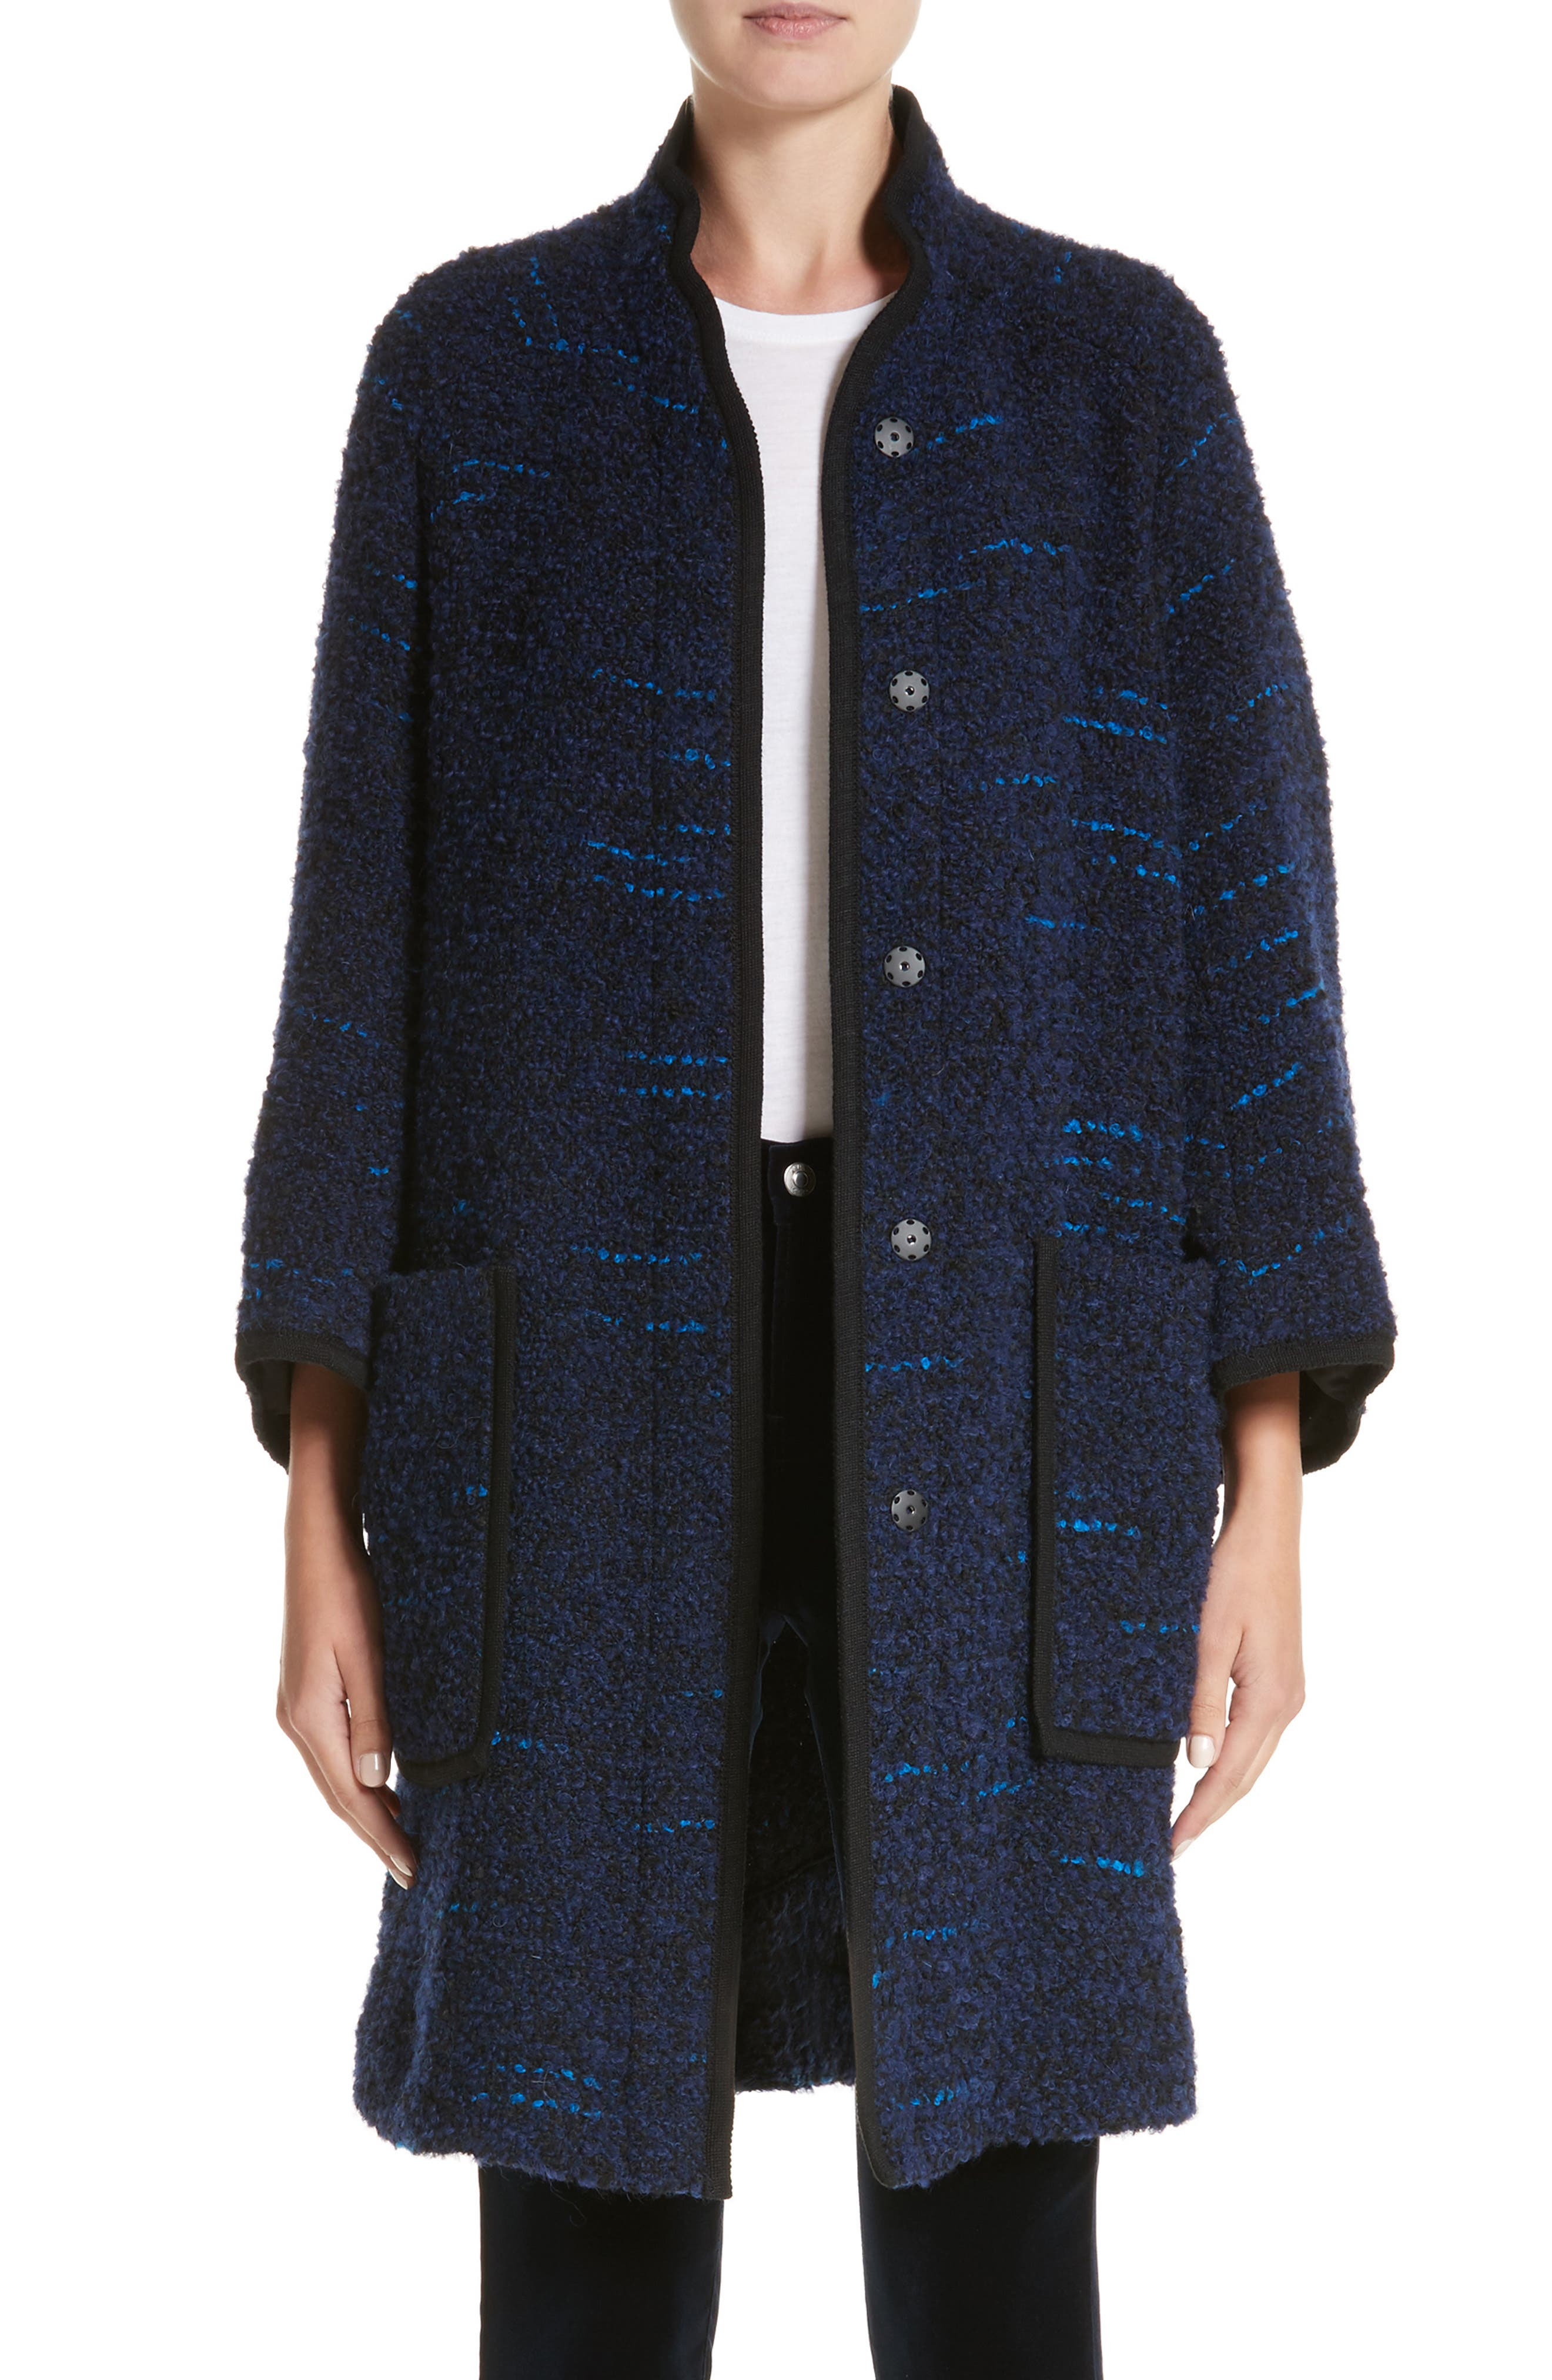 Alternate Image 1 Selected - Armani Collezioni Wool Blend Swing Coat